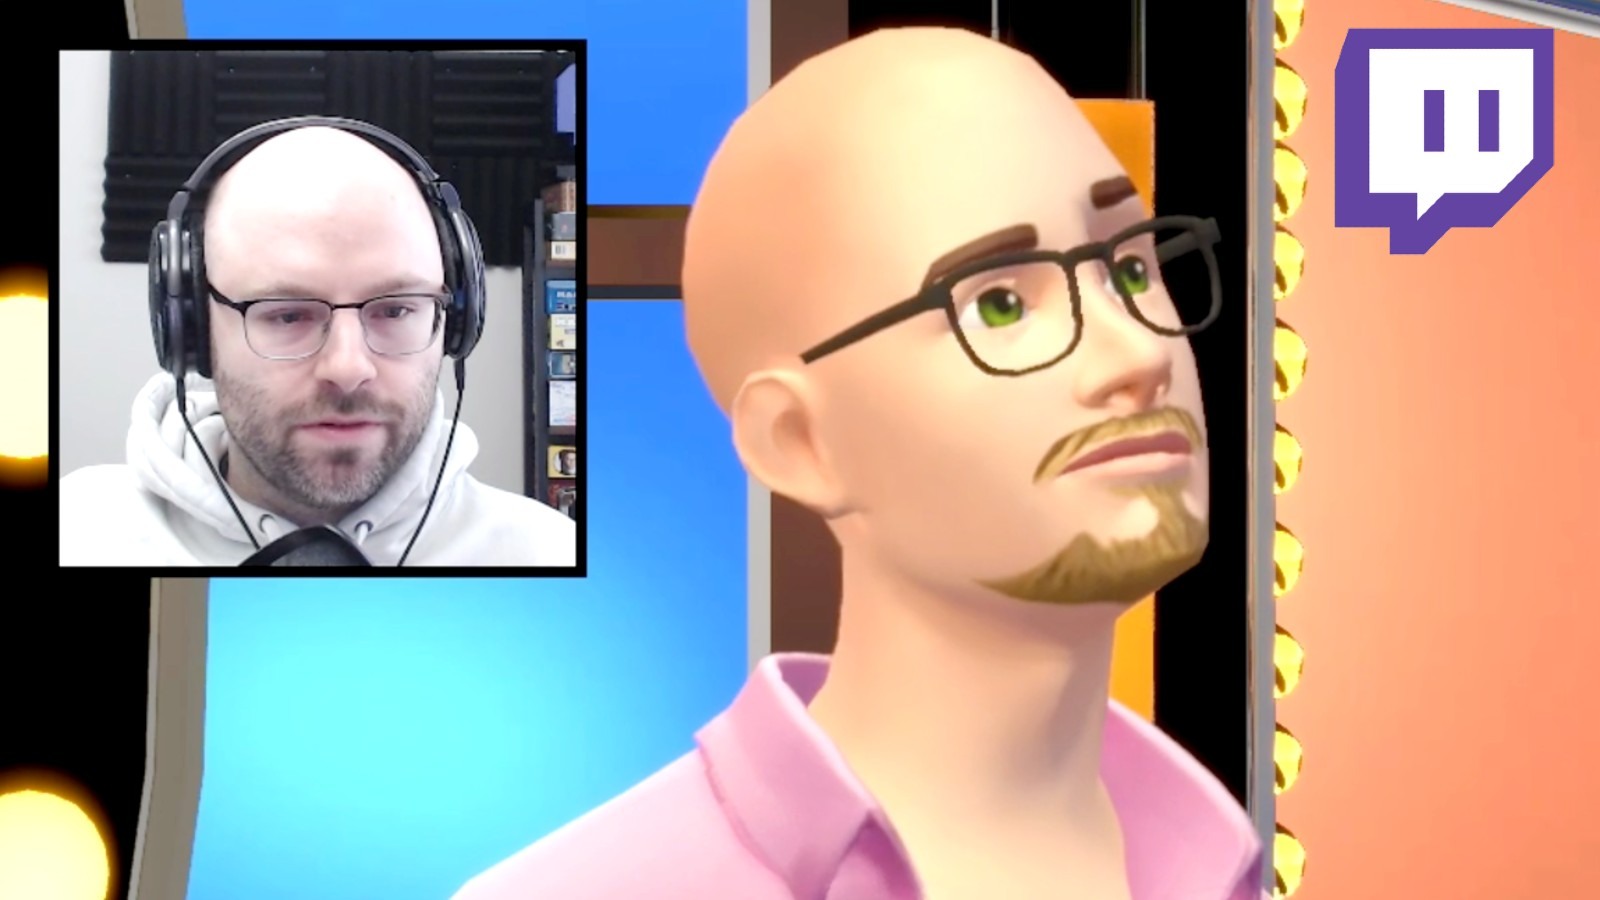 Twitch streamer Northernlion plays Family Feud